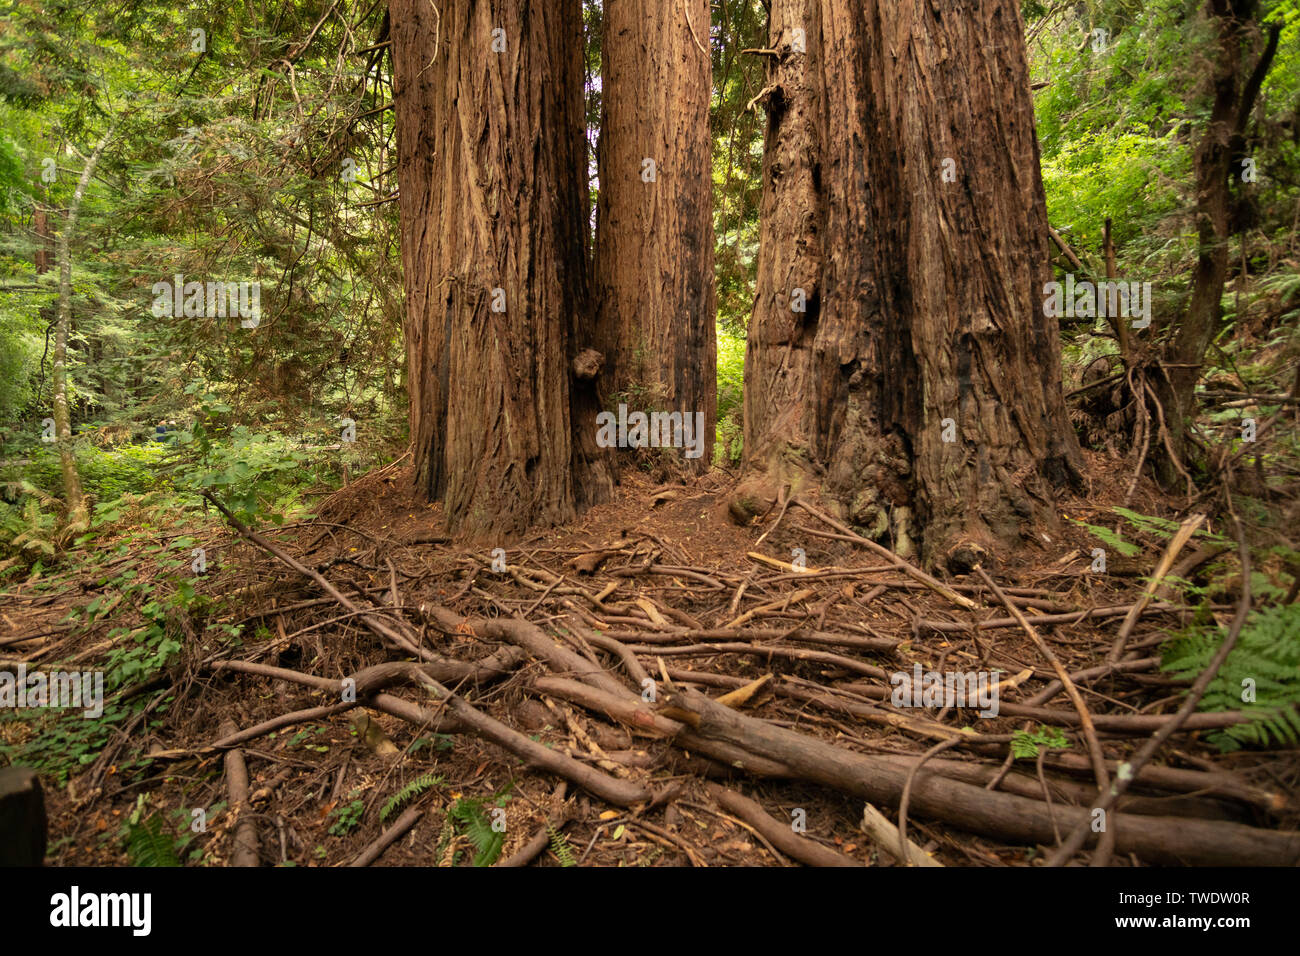 Some branch debris at the base of large Redwood Trees in Muir Woods National Park. - Stock Image